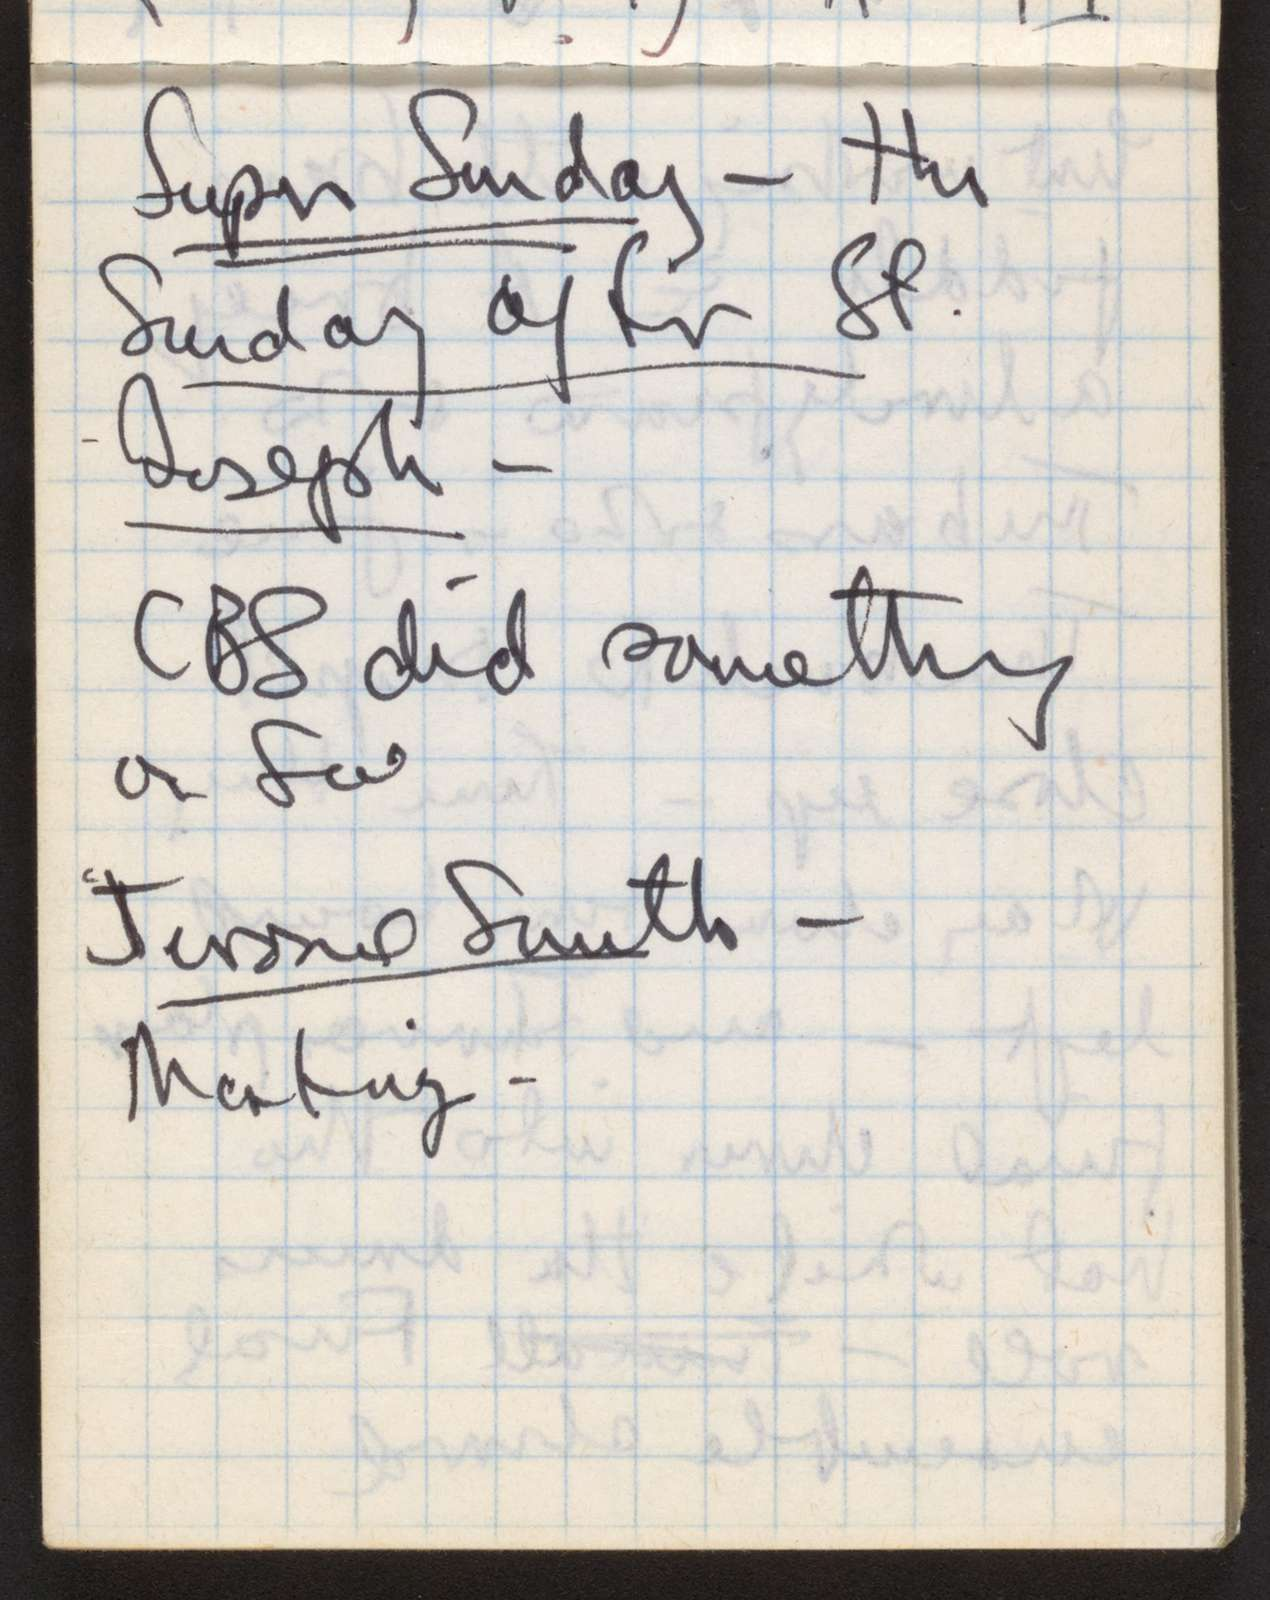 Alan Lomax Collection, Manuscripts, American Patchwork, 1978-1991, Cajun Country